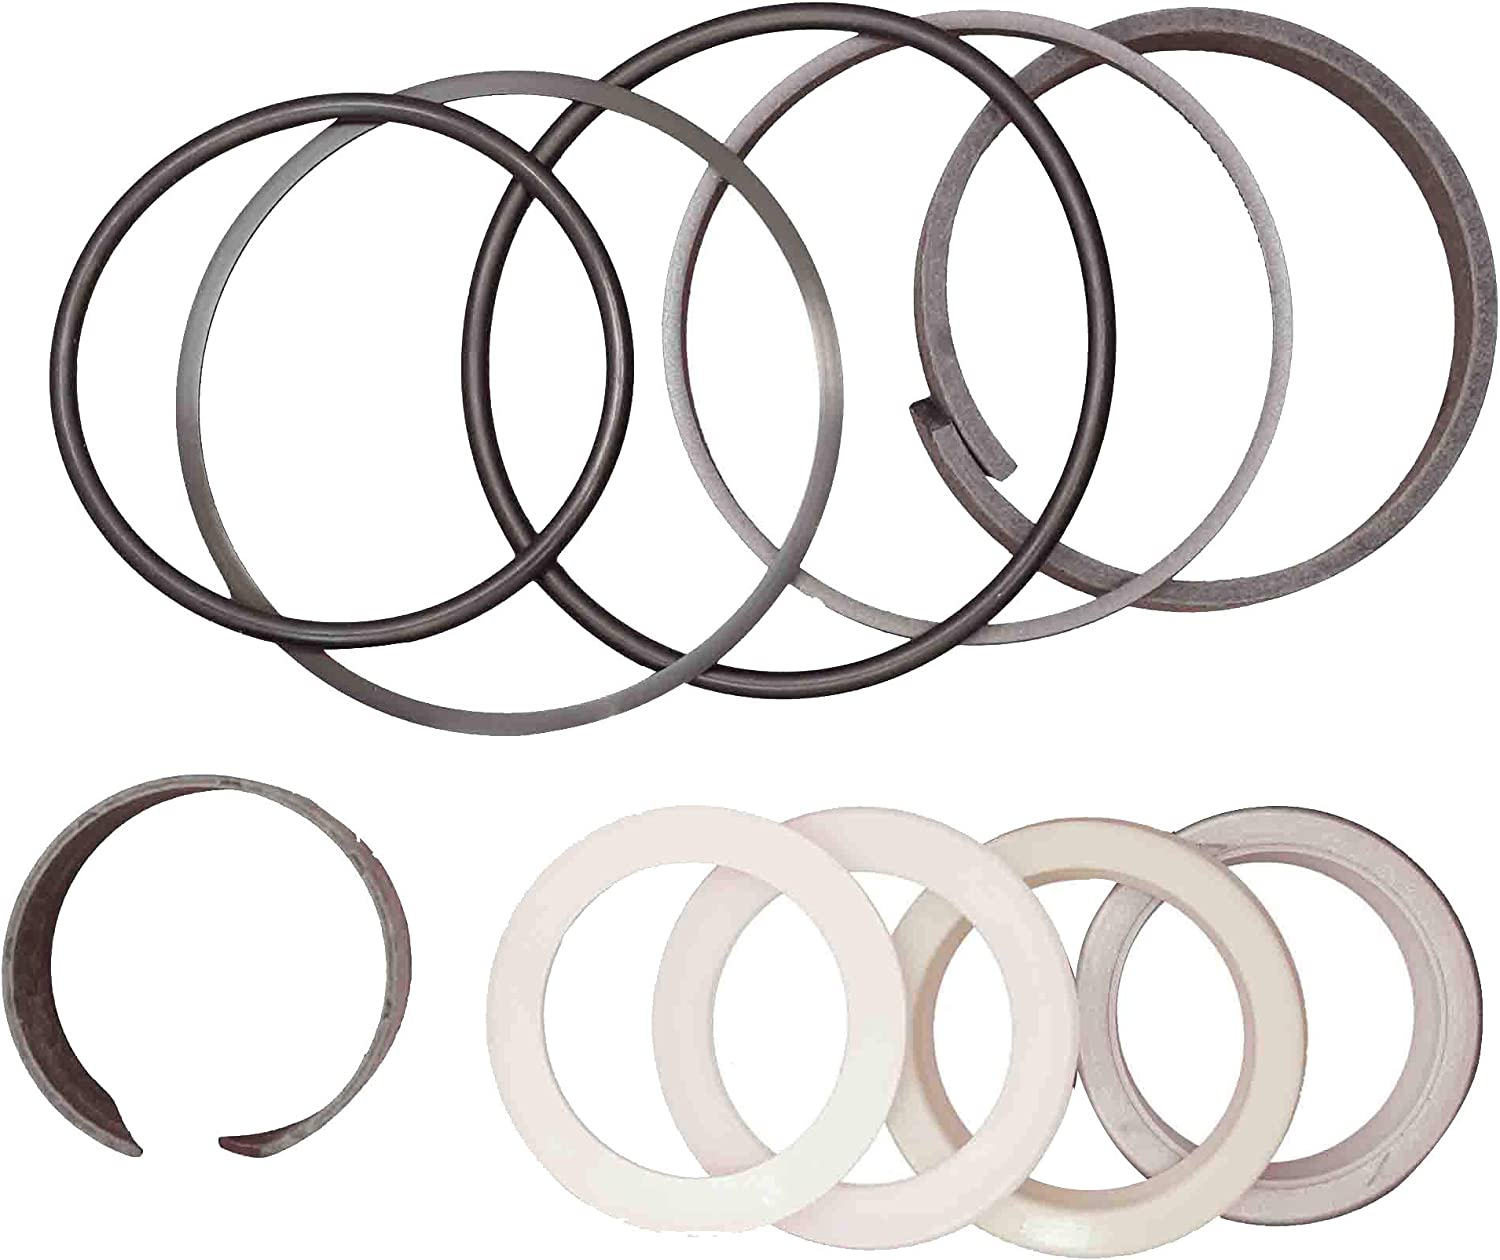 Tornado Heavy Equipment Parts Fits Case 1543313C1 Hydraulic Cylinder Seal Kit